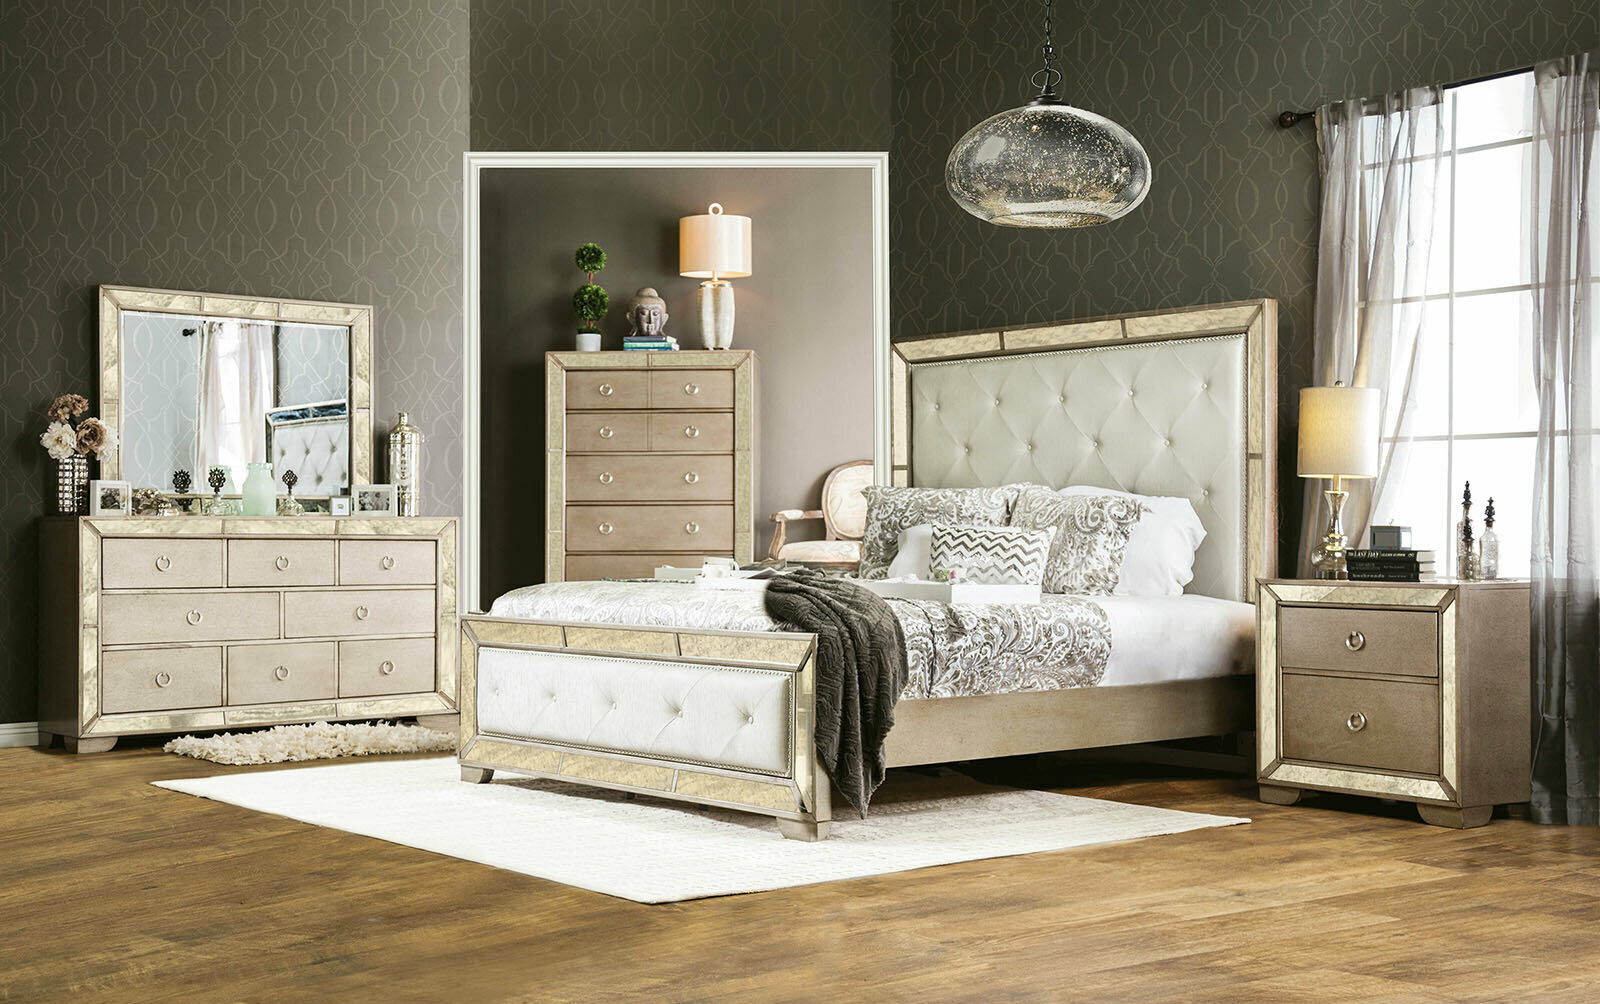 New Champagne Finish Mirror 5 Piece Bedroom Set W Faux Leather Queen Bed Icau For Sale Online